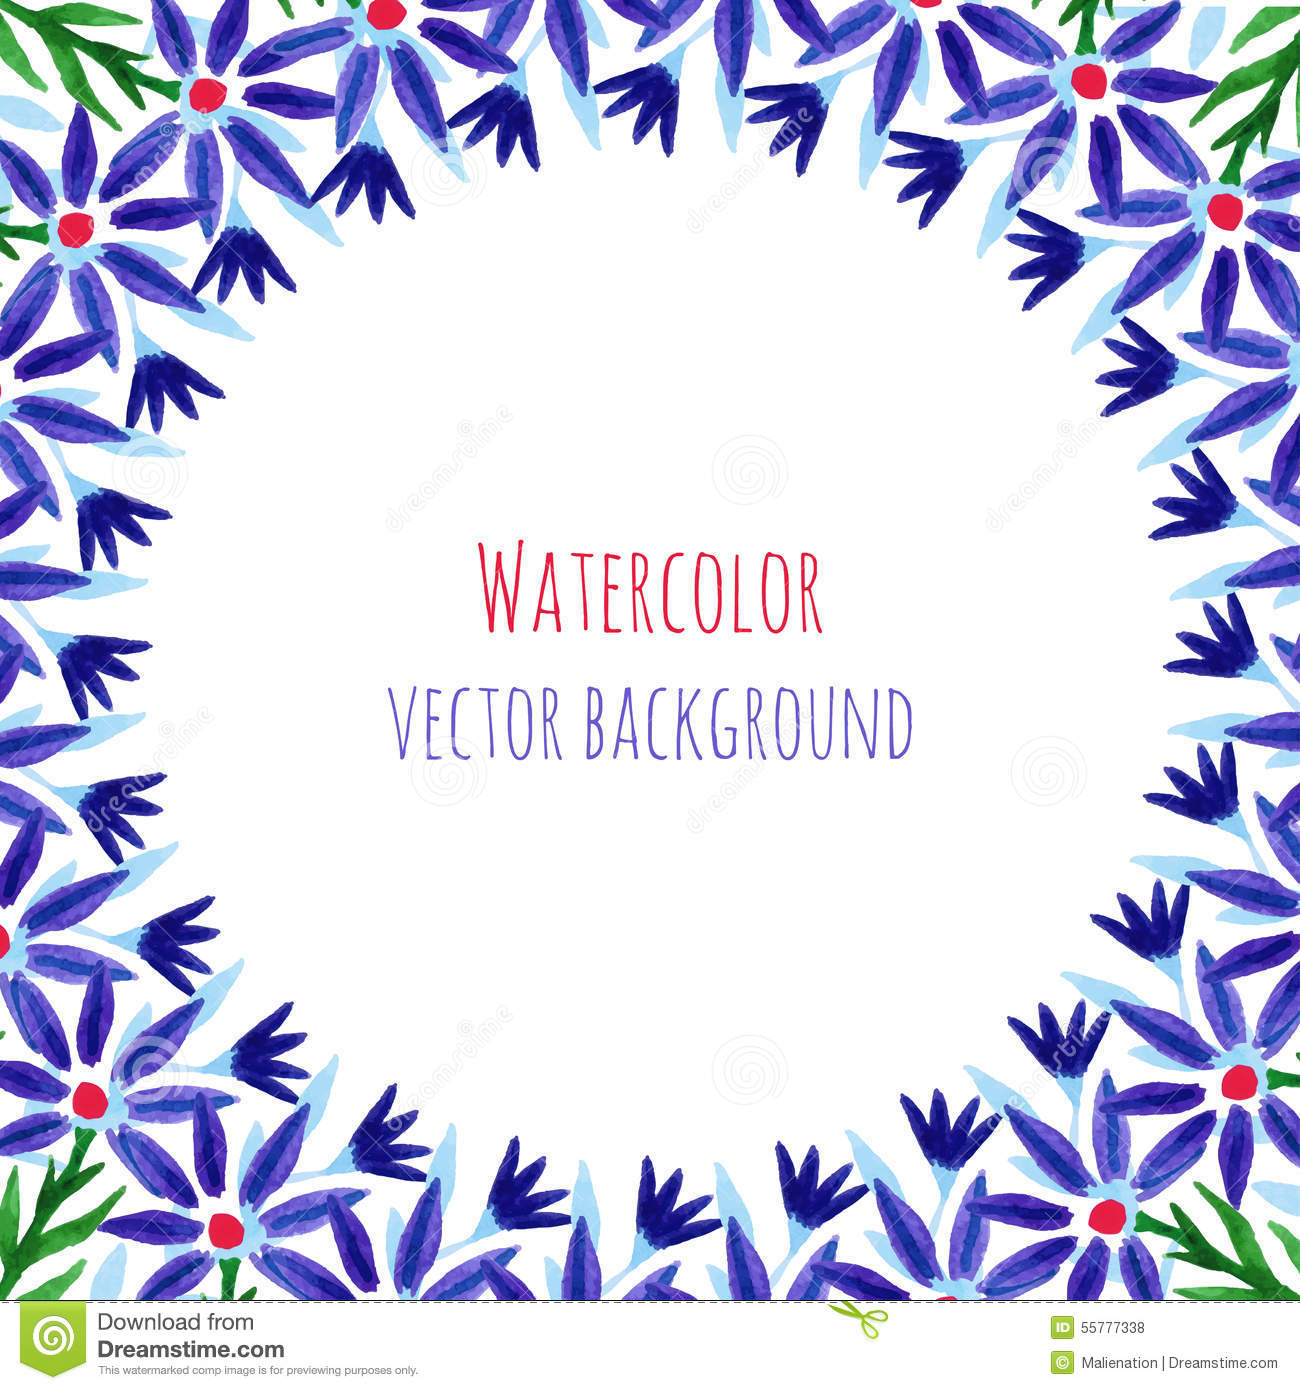 Watercolor Decorative Round Frame With Violet Flowers